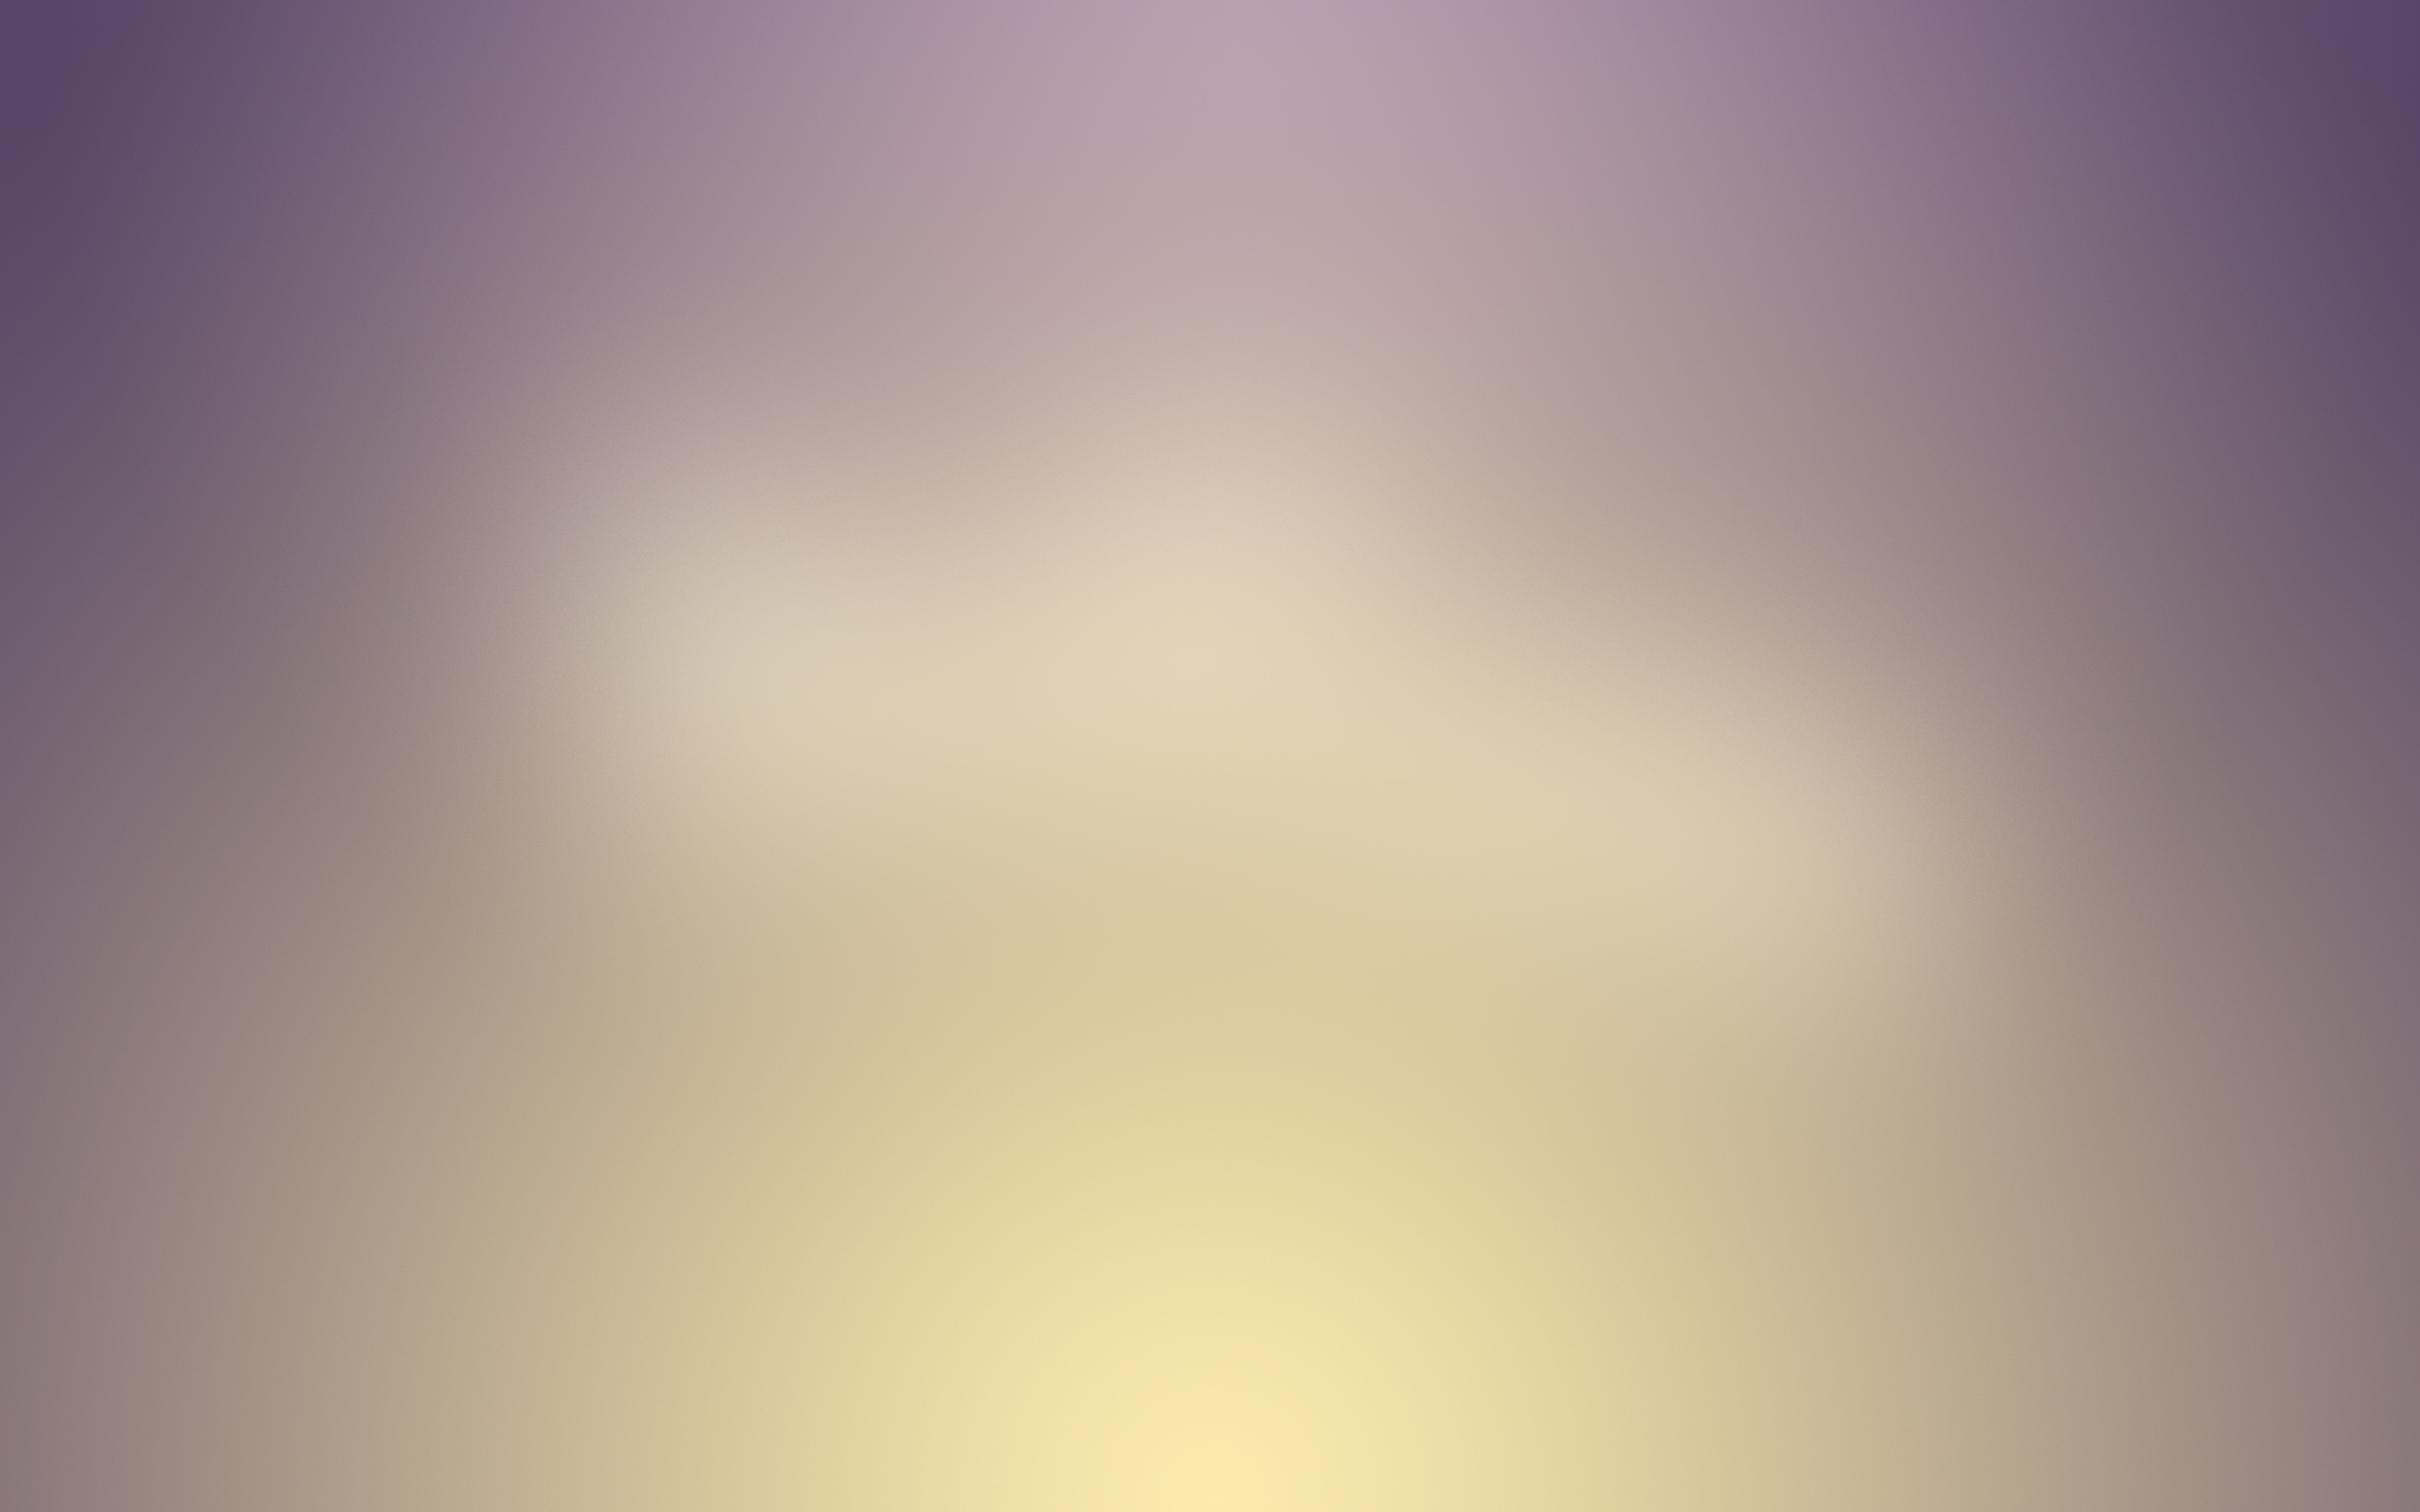 Light Colored Wallpaper Wallpapersafari